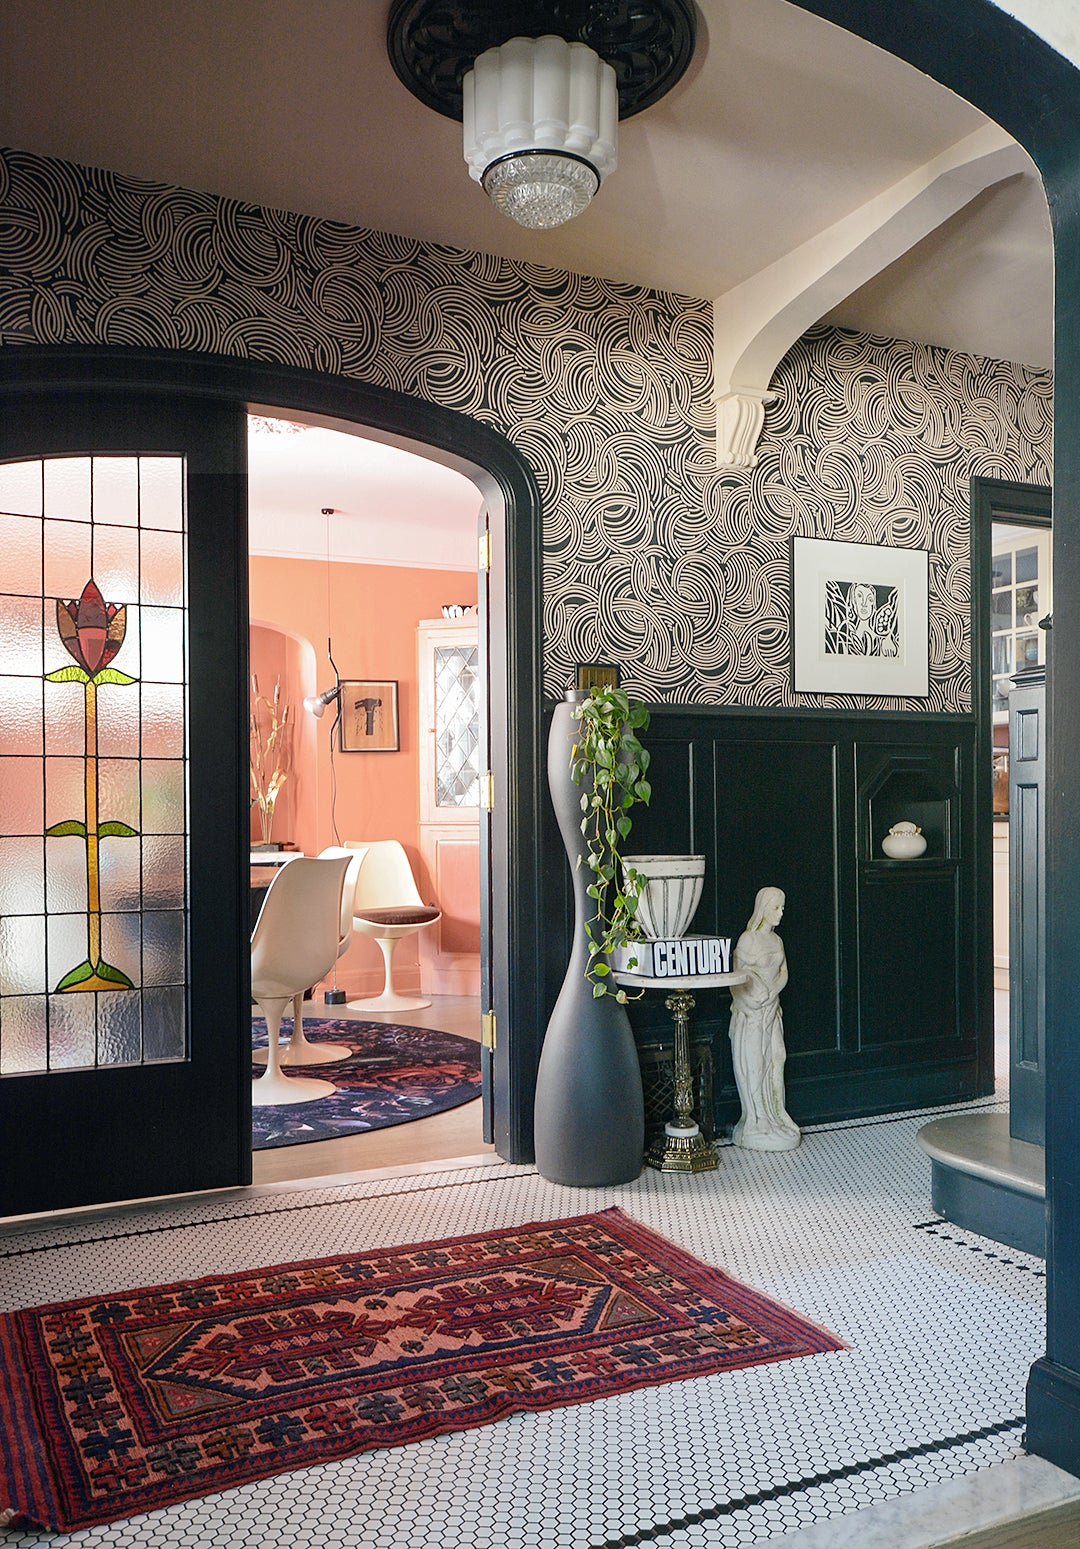 entry way with swirled wallpaper